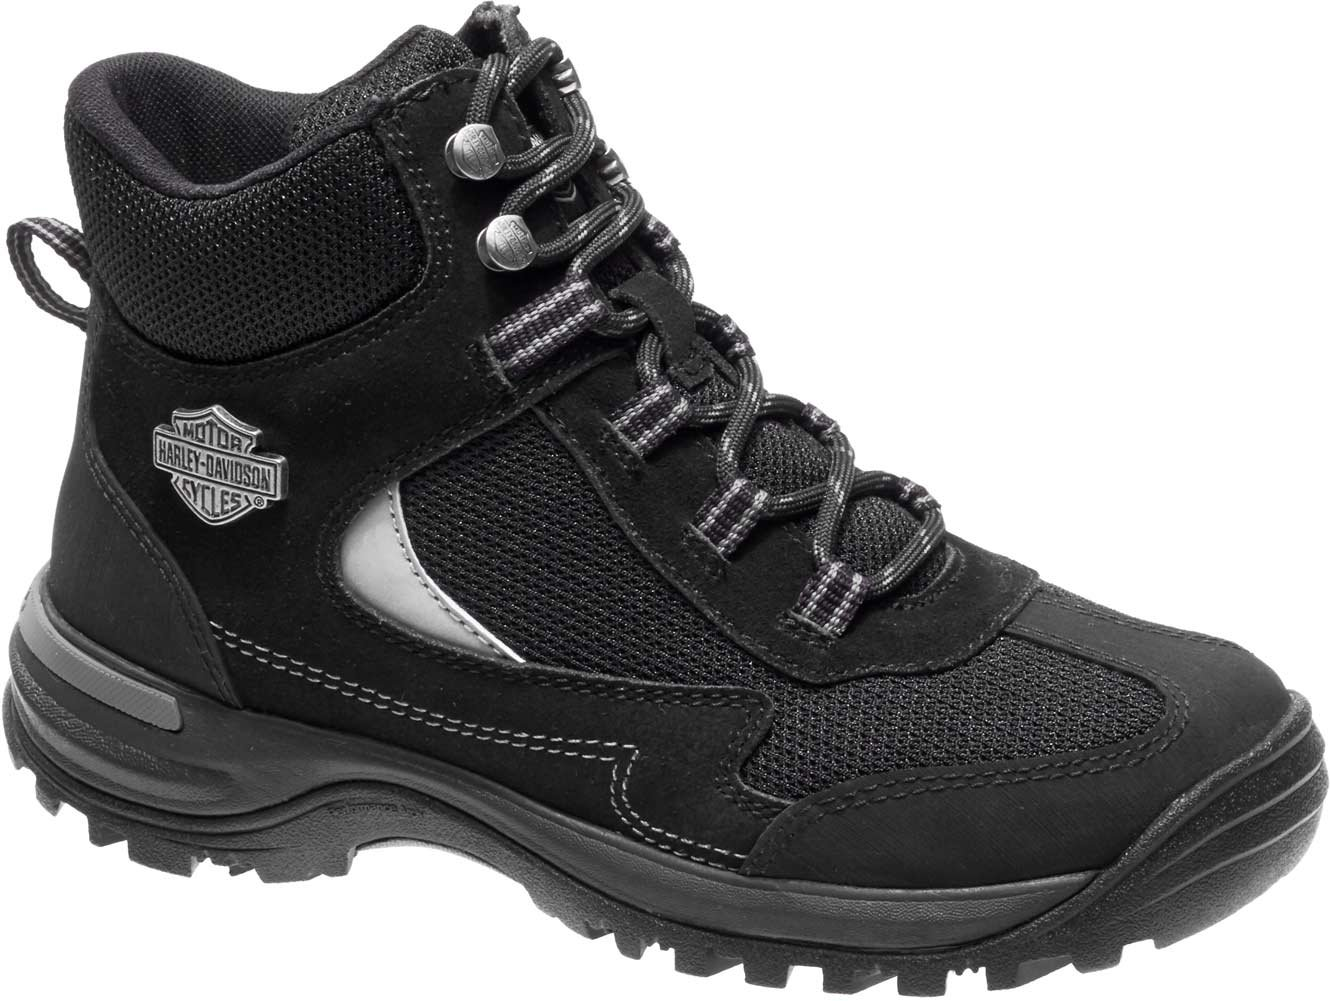 Harley-Davidson Women's Waites CT Industrial Shoe, Black, 7.5 Medium US